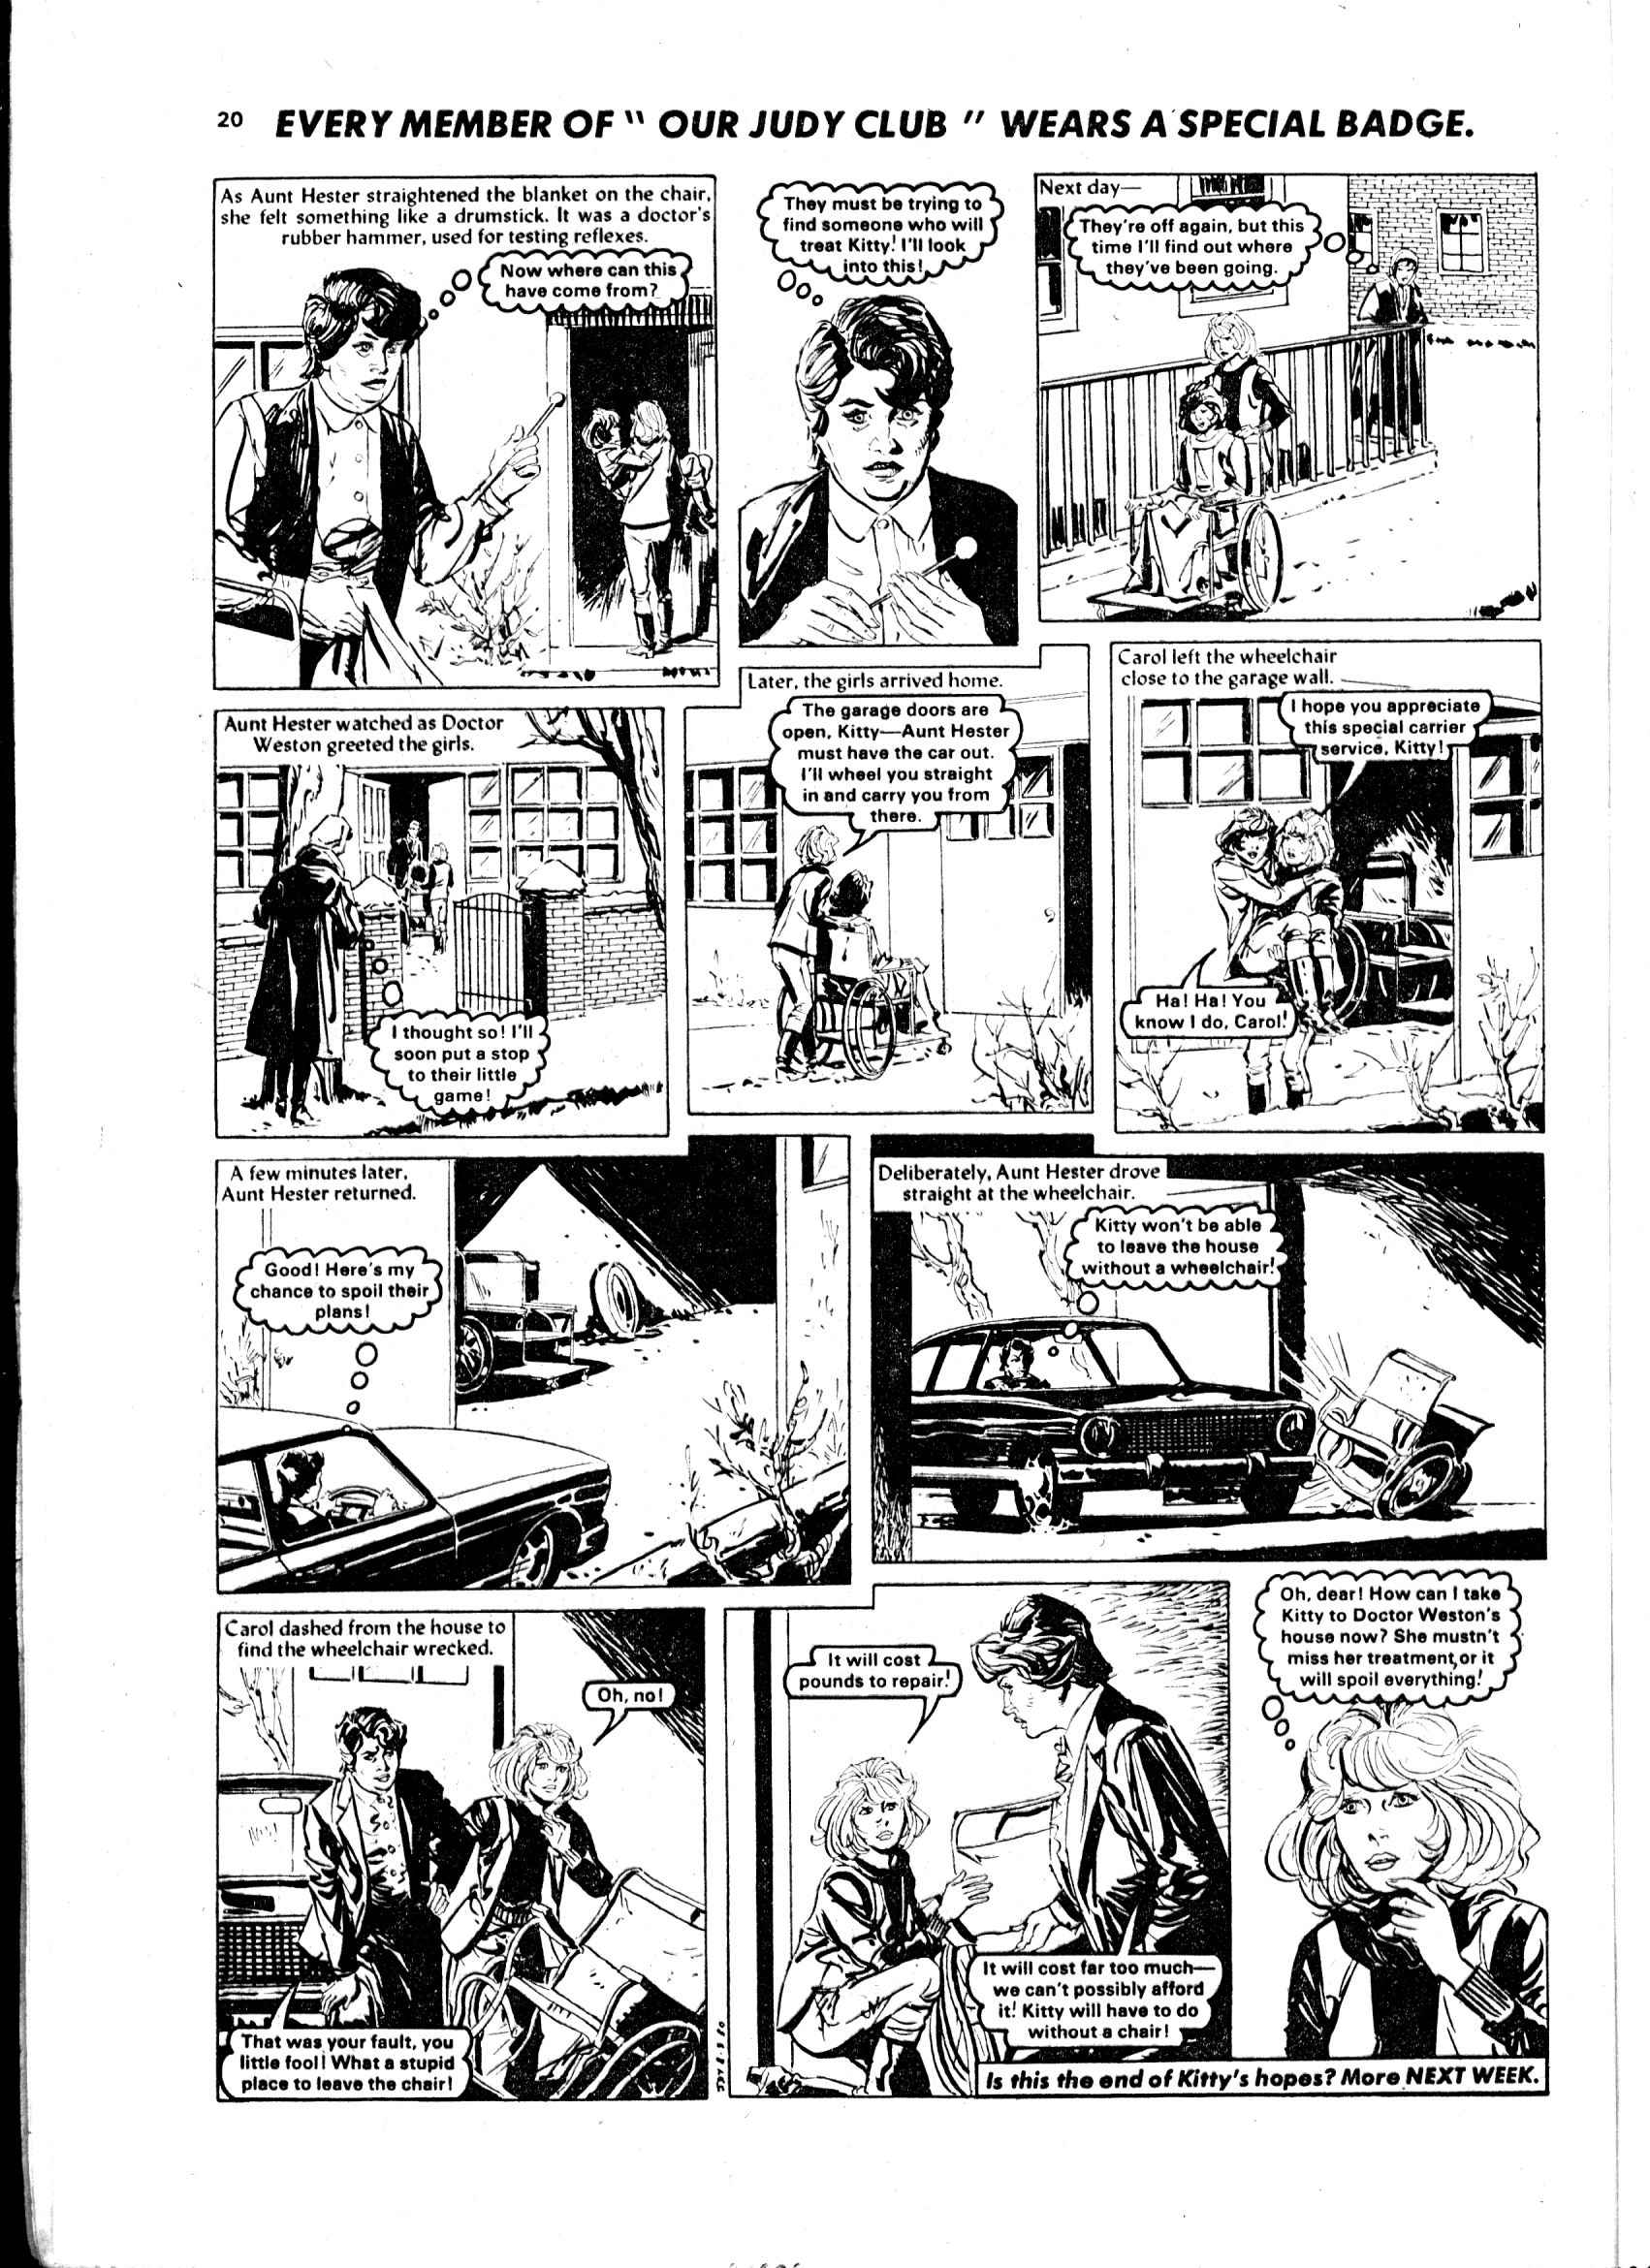 Read online Judy comic -  Issue #1052 - 20